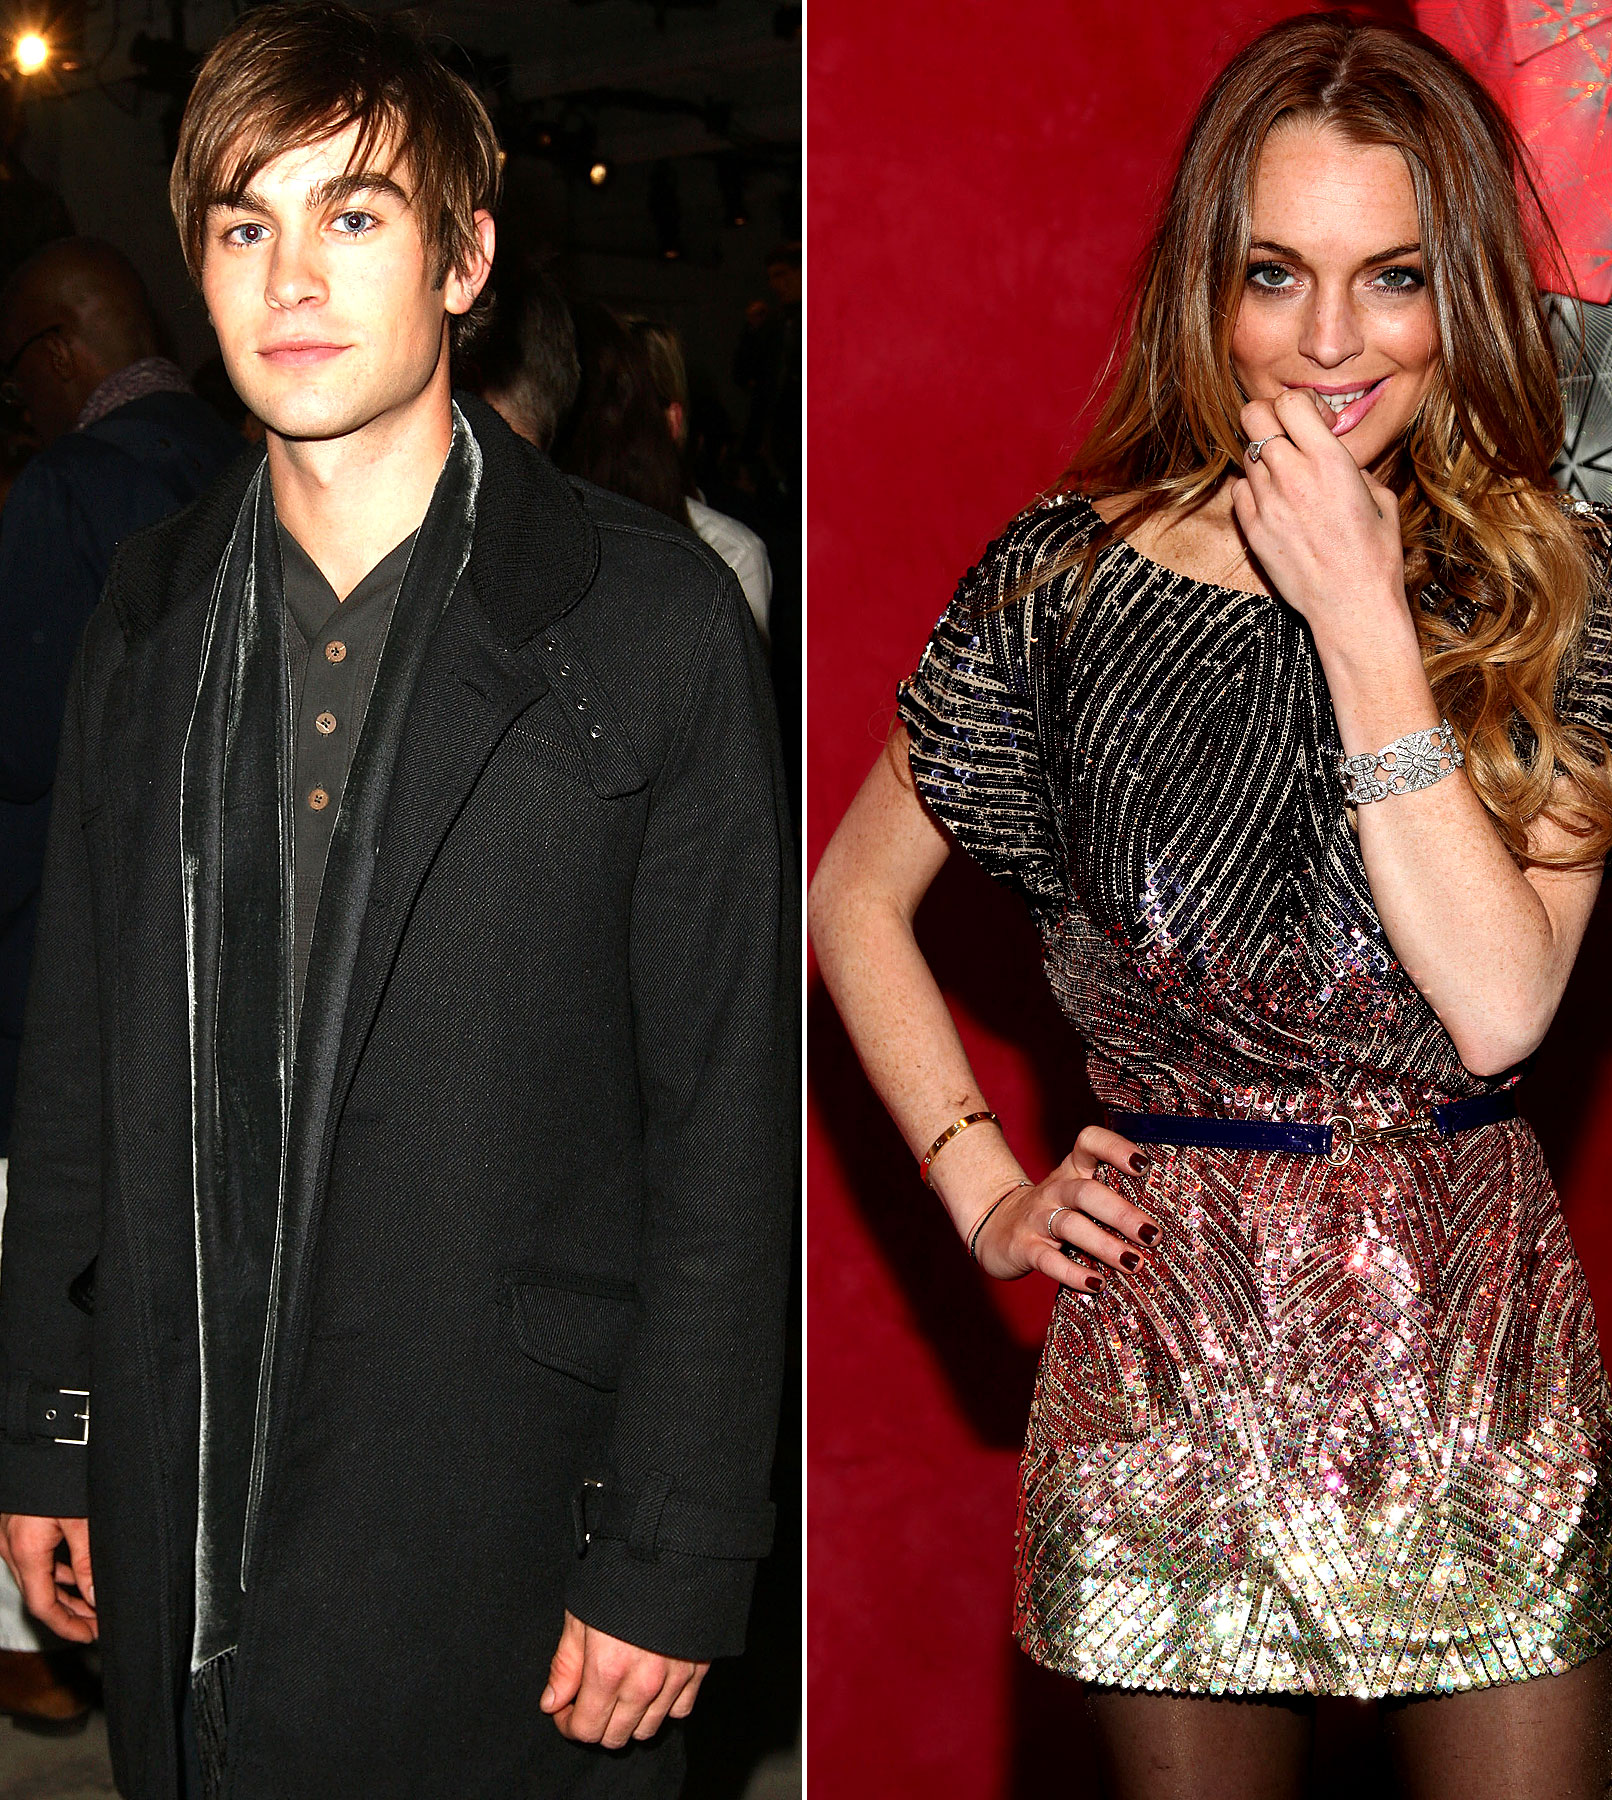 Lindsay Lohan Double-Dissed by Chace Crawford